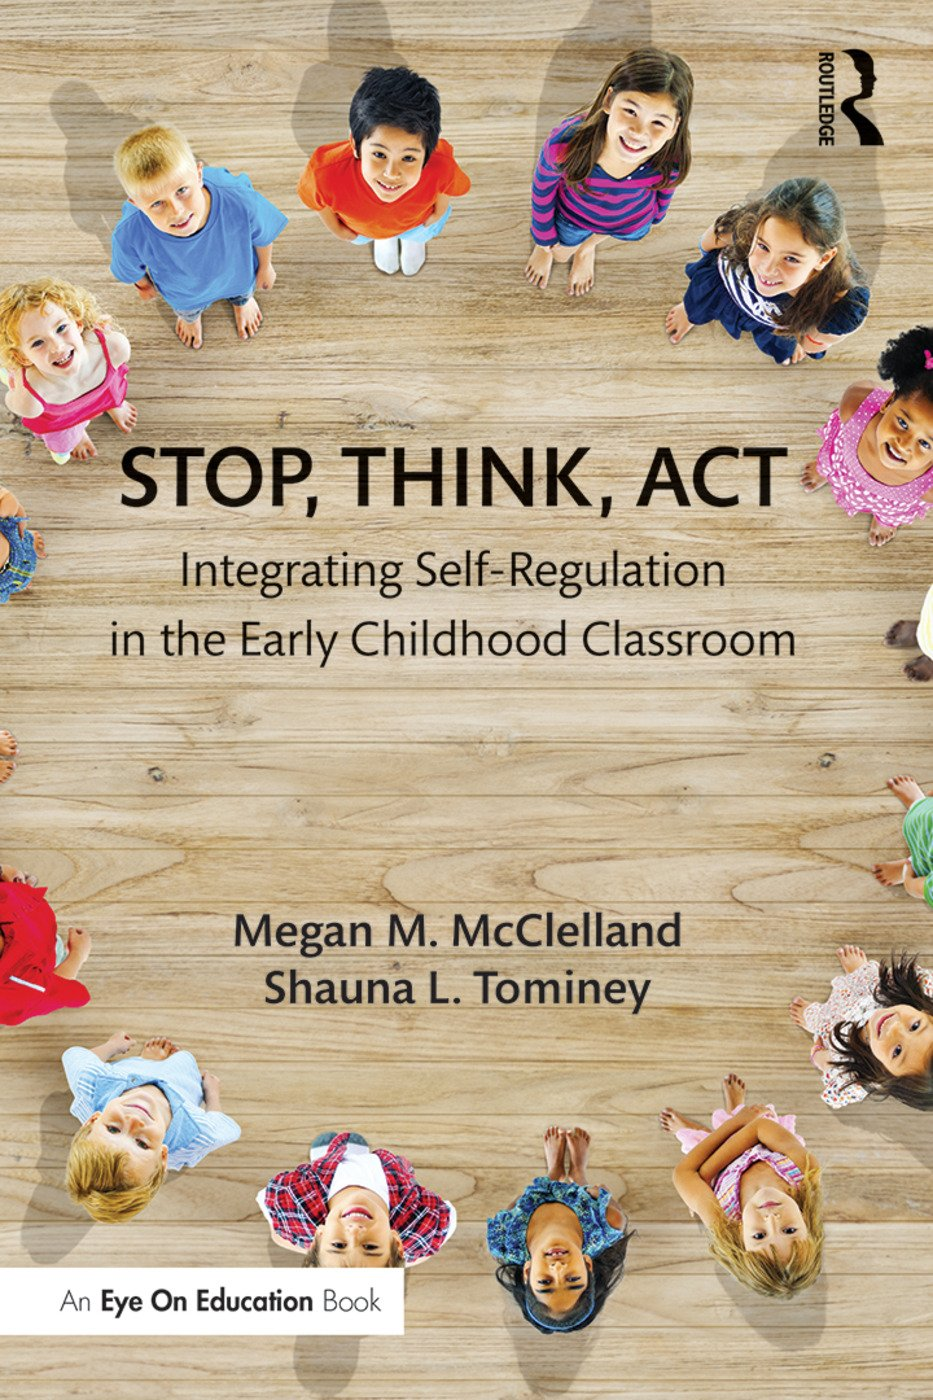 Stop, Think, Act: Integrating Self-Regulation in the Early Childhood Classroom (Paperback) book cover